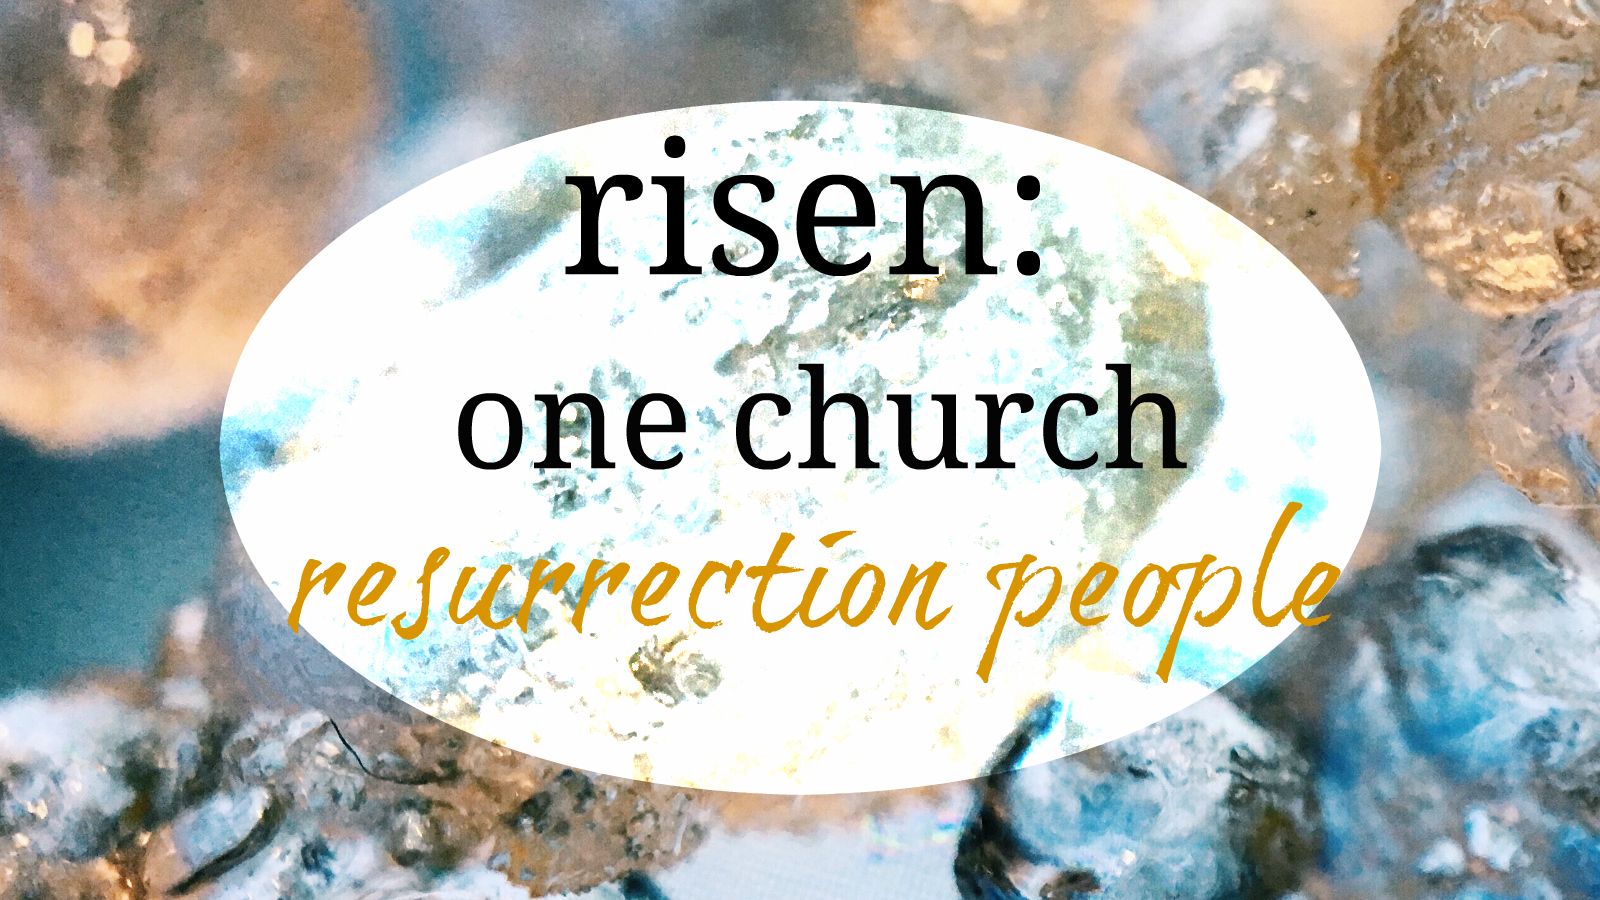 Risen3 One Church SS spring18.jpg